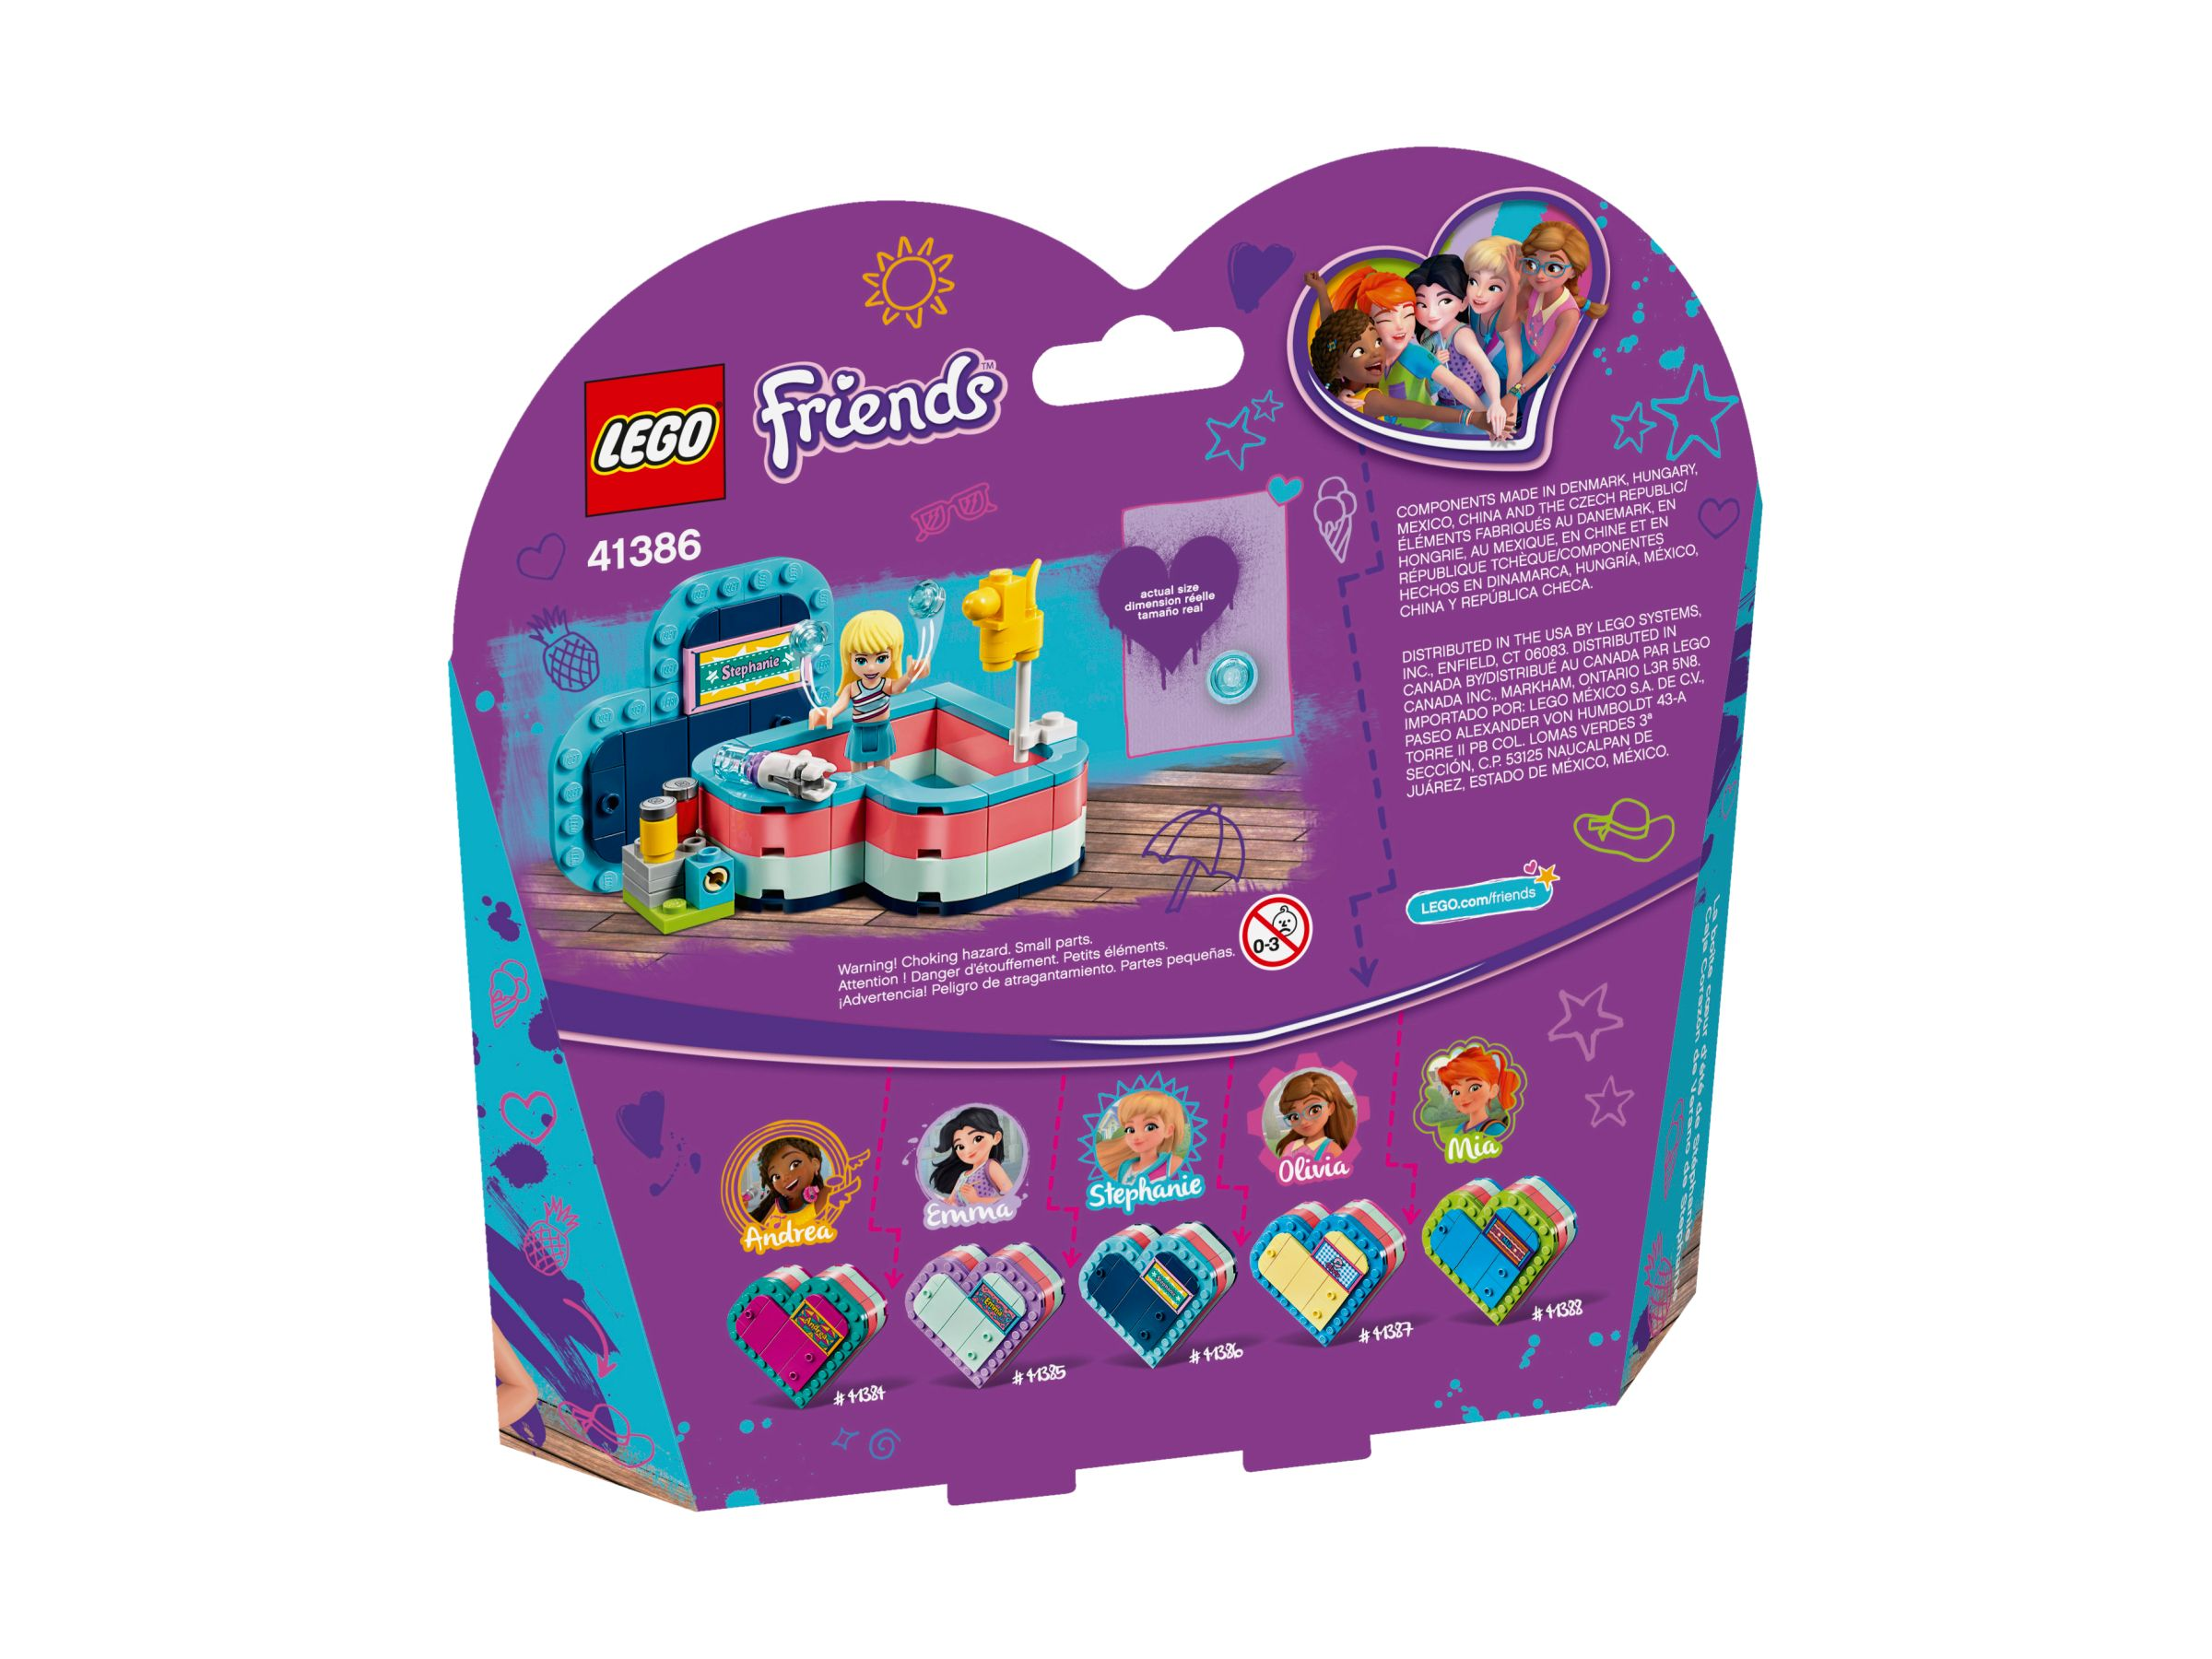 LEGO Friends 41386 Stephanies sommerliche Herzbox LEGO_41386_alt4.jpg